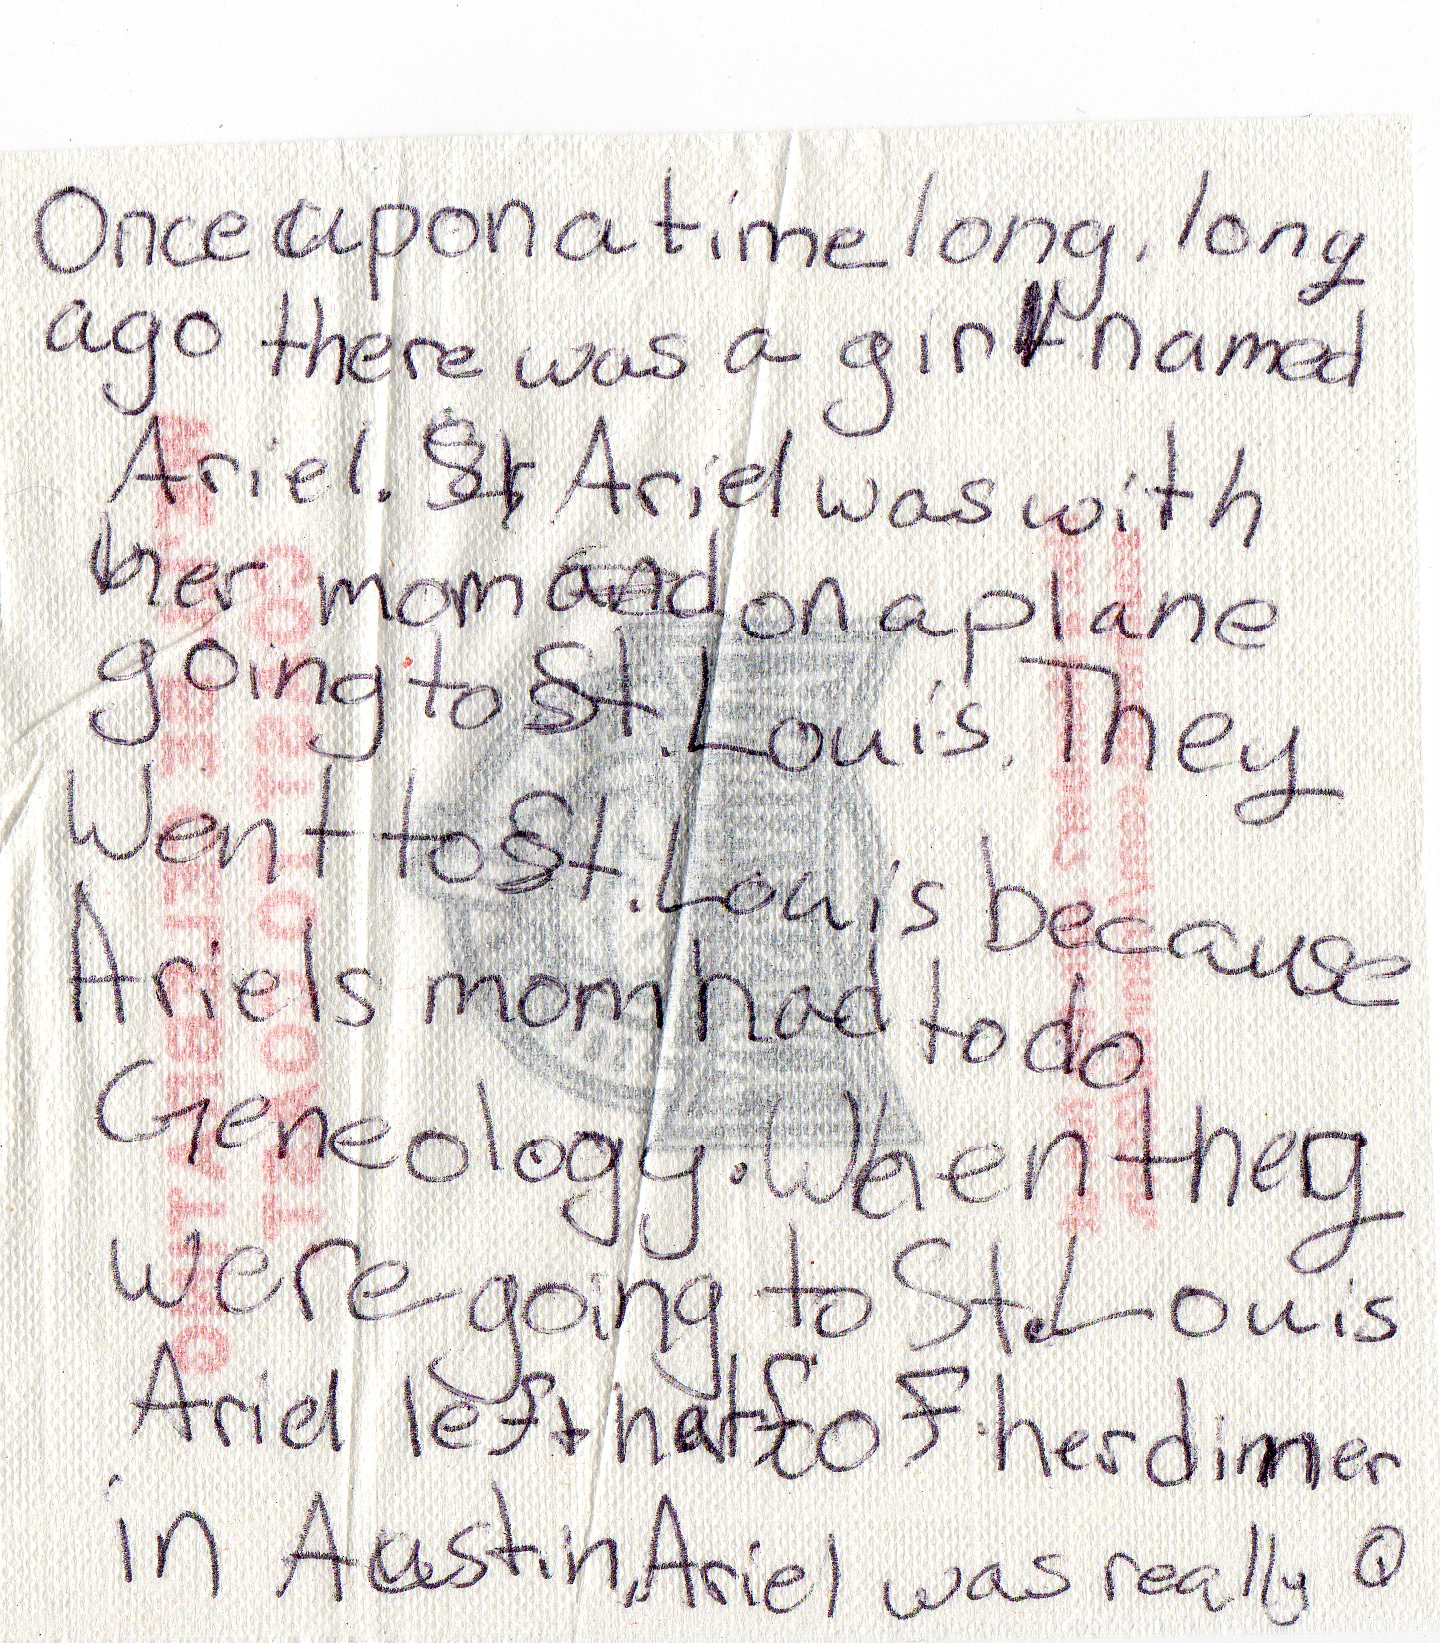 Story on Airline Napkin part 1